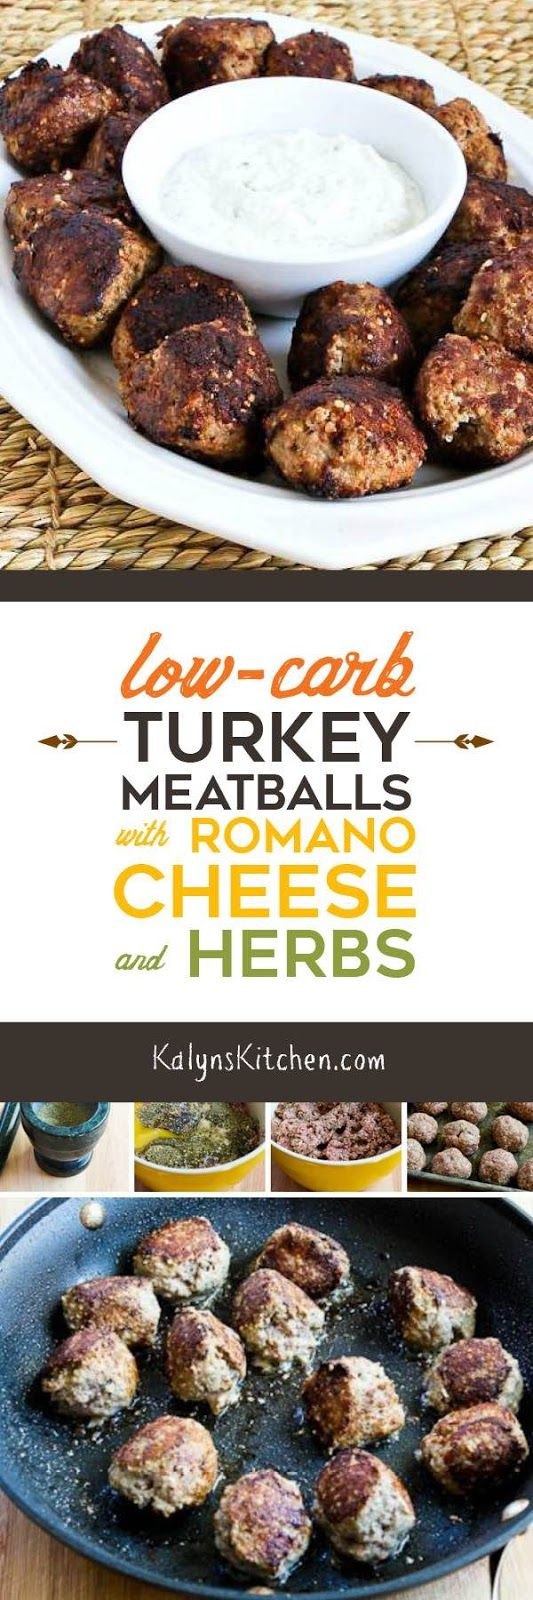 Low-Carb Turkey Meatballs with Romano Cheese and Herbs are also gluten-free and South Beach Diet Phase One, and they're delicious! [found on KalynsKitchen.com]